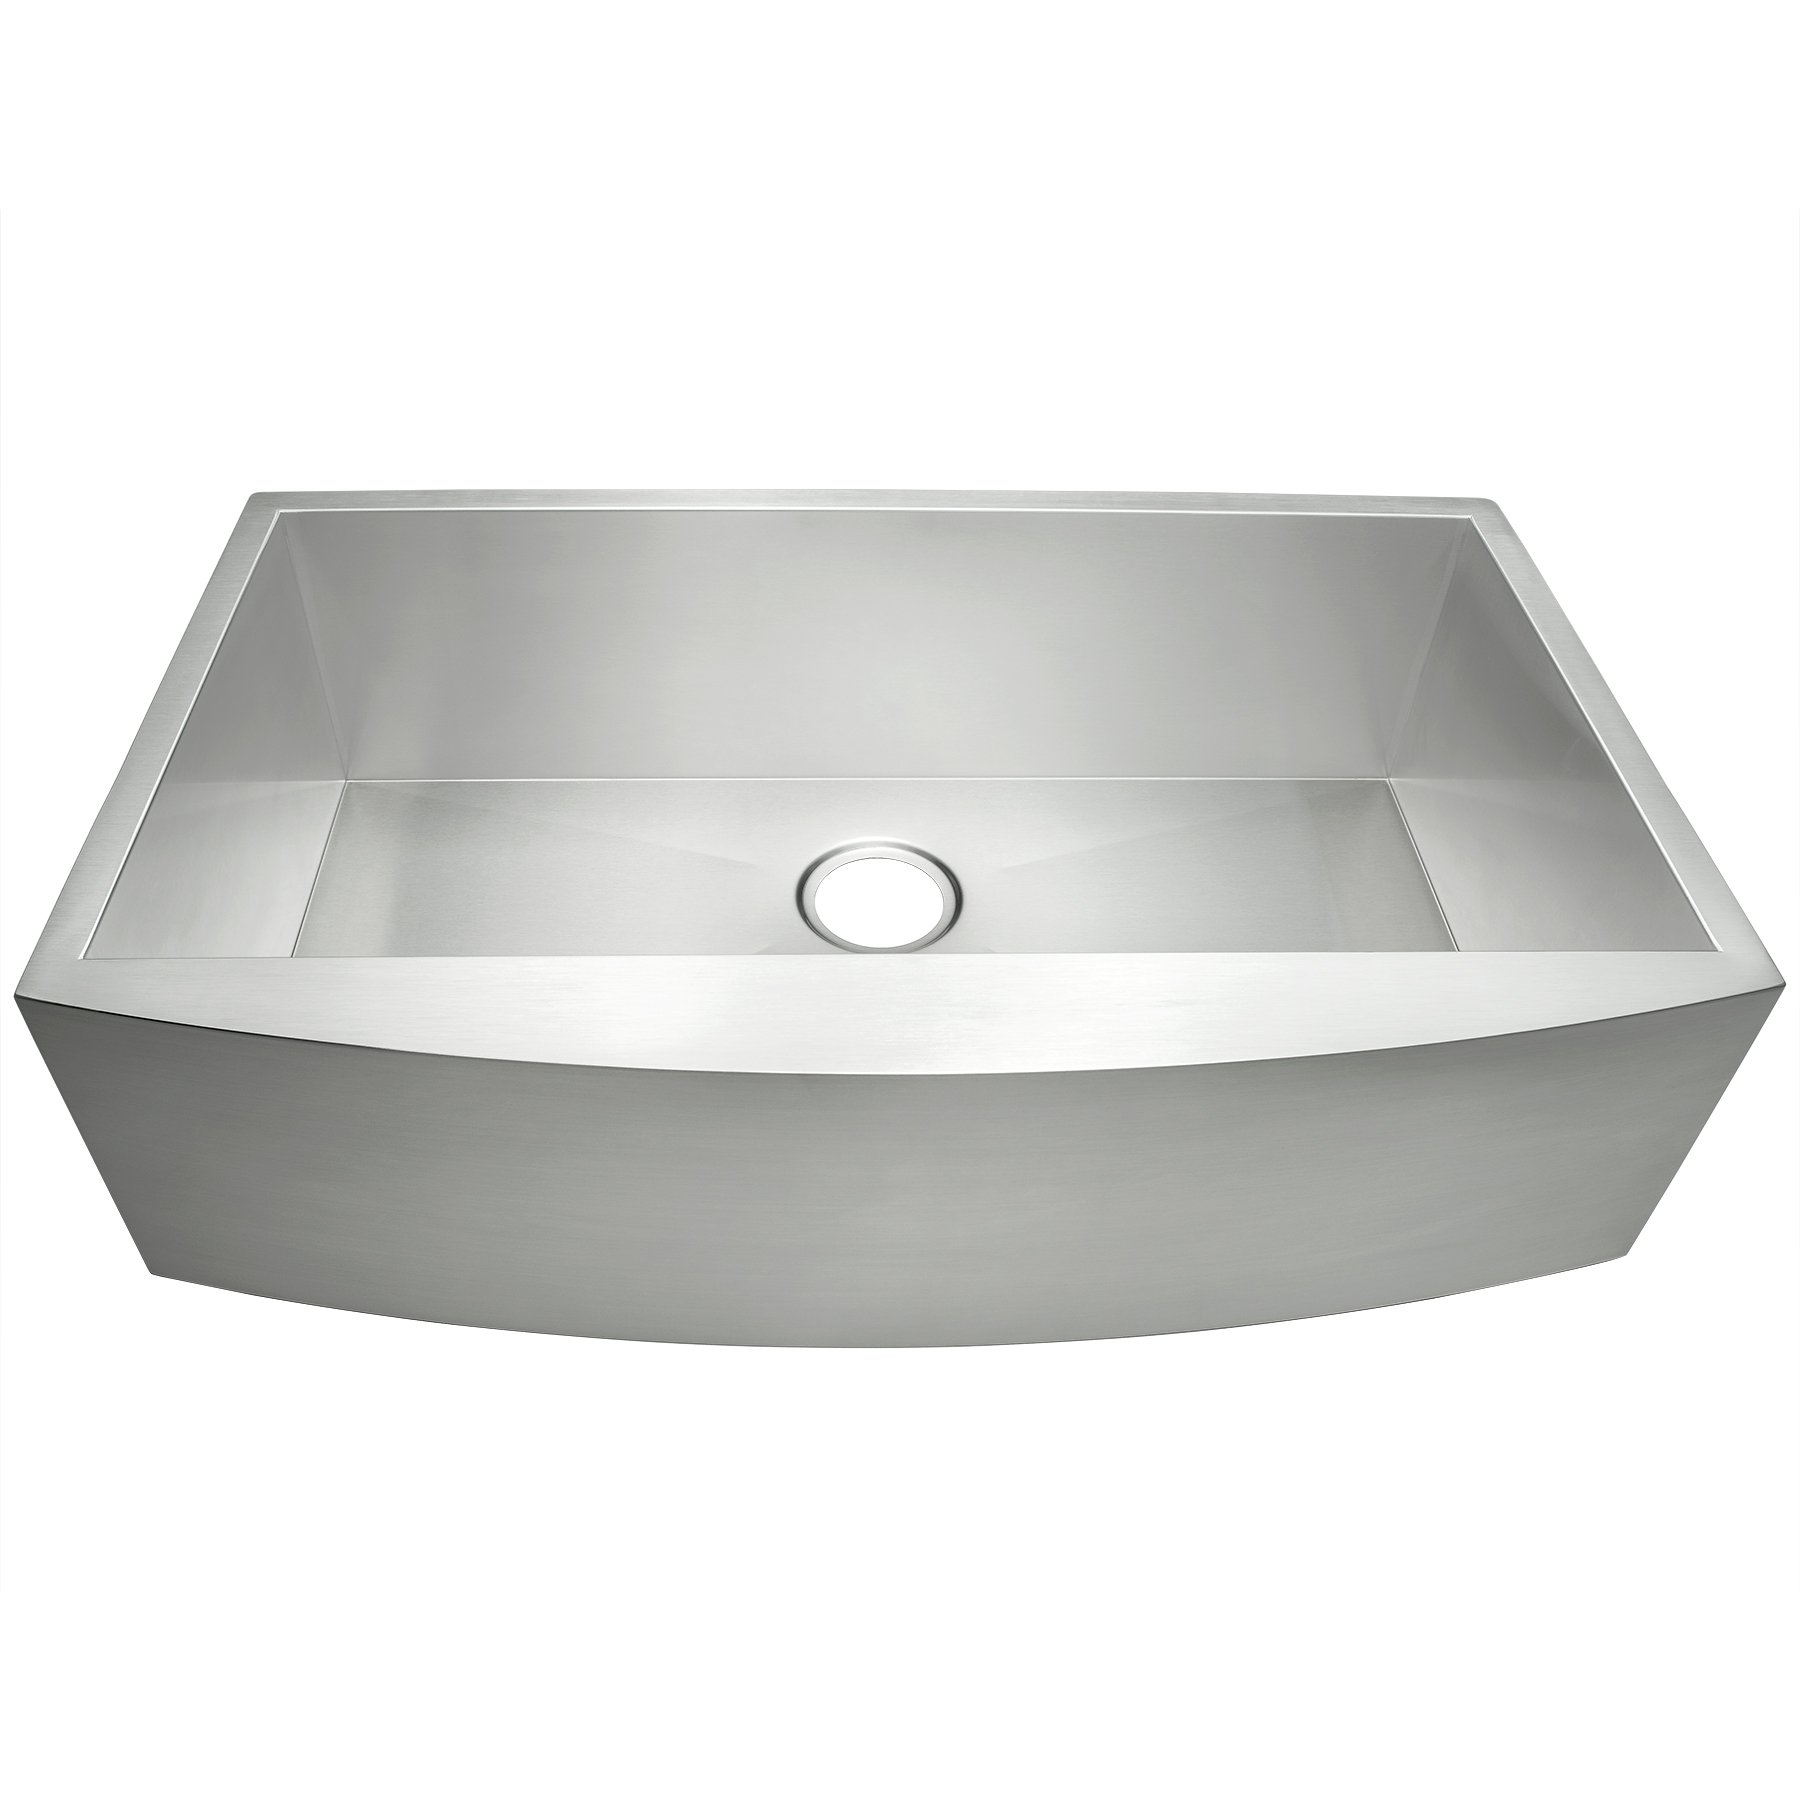 Golden Vantage 33'' Undermount Apron Zero Radius 16 Gauge Curved Front Stainless Steel Zero Radius Kitchen Sink (Single Bowl)